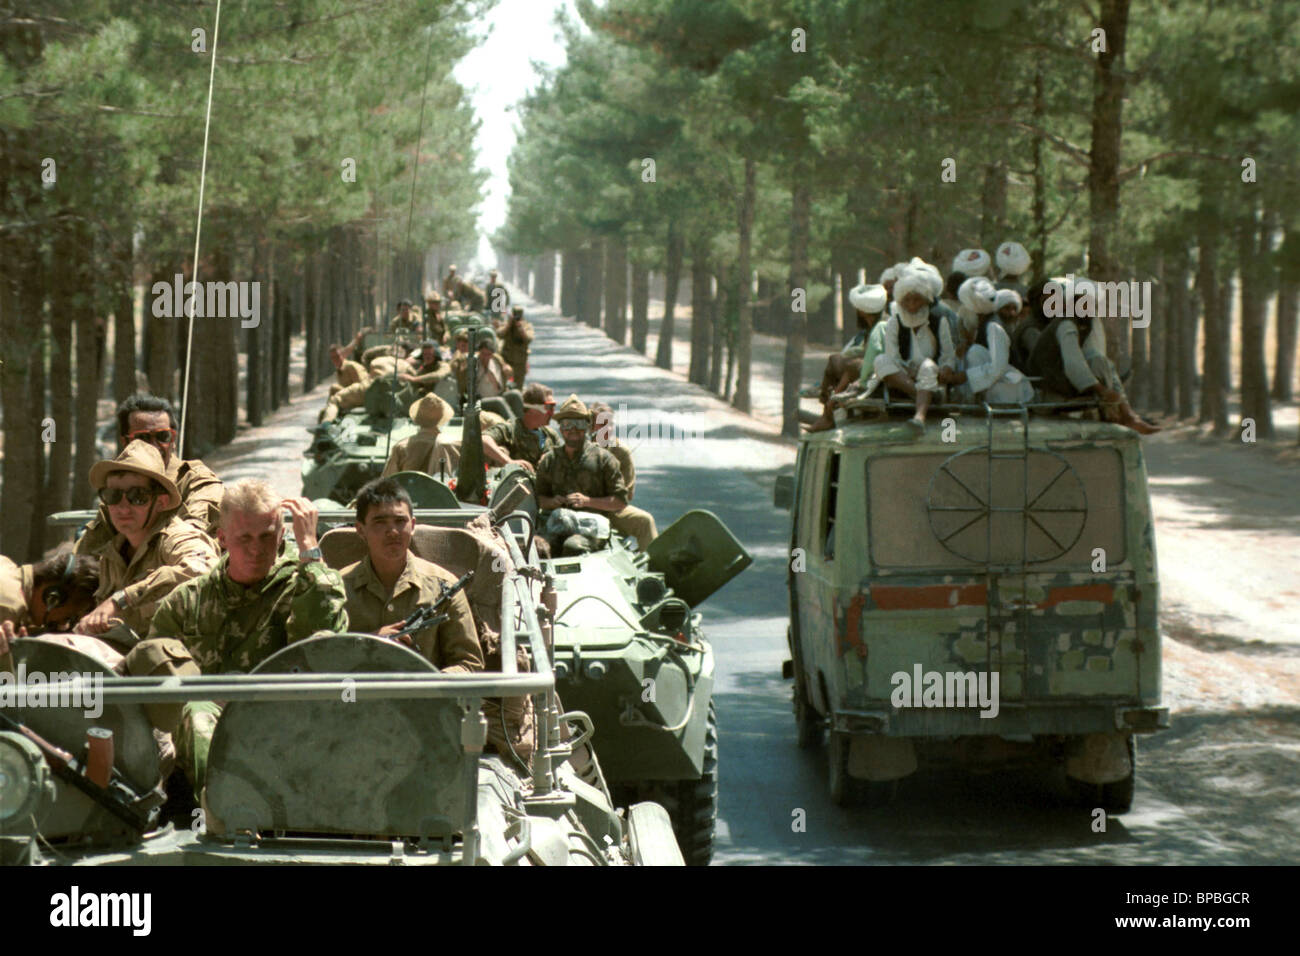 Soviet Afghanistan war - Page 6 Withdrawal-of-soviet-troops-from-afghanistan-1988-BPBGCR